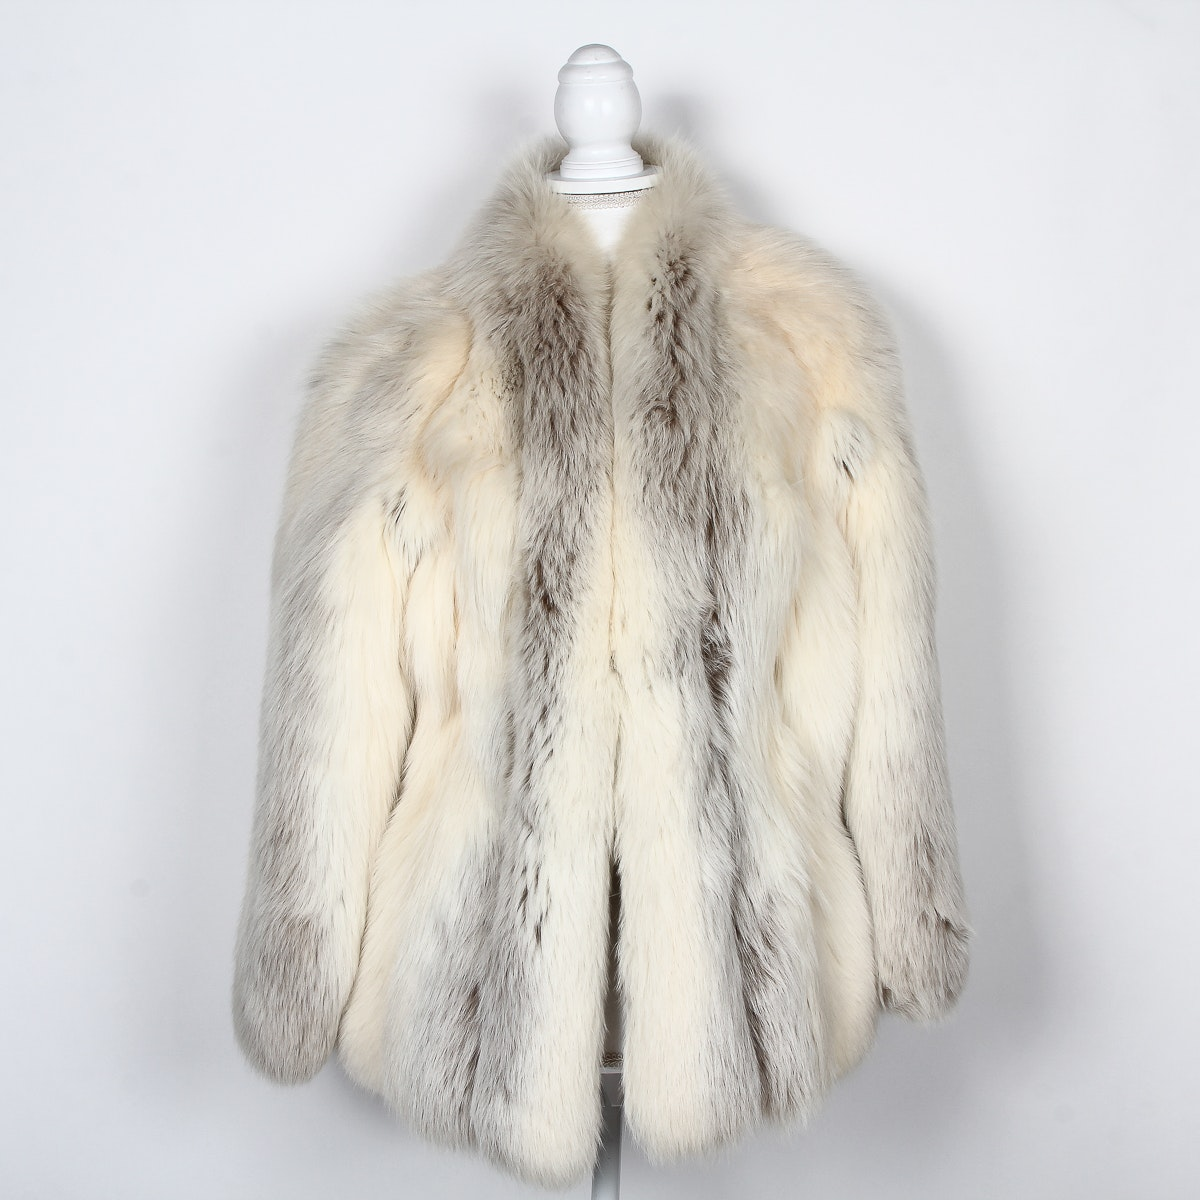 Vintage White Mink Coat